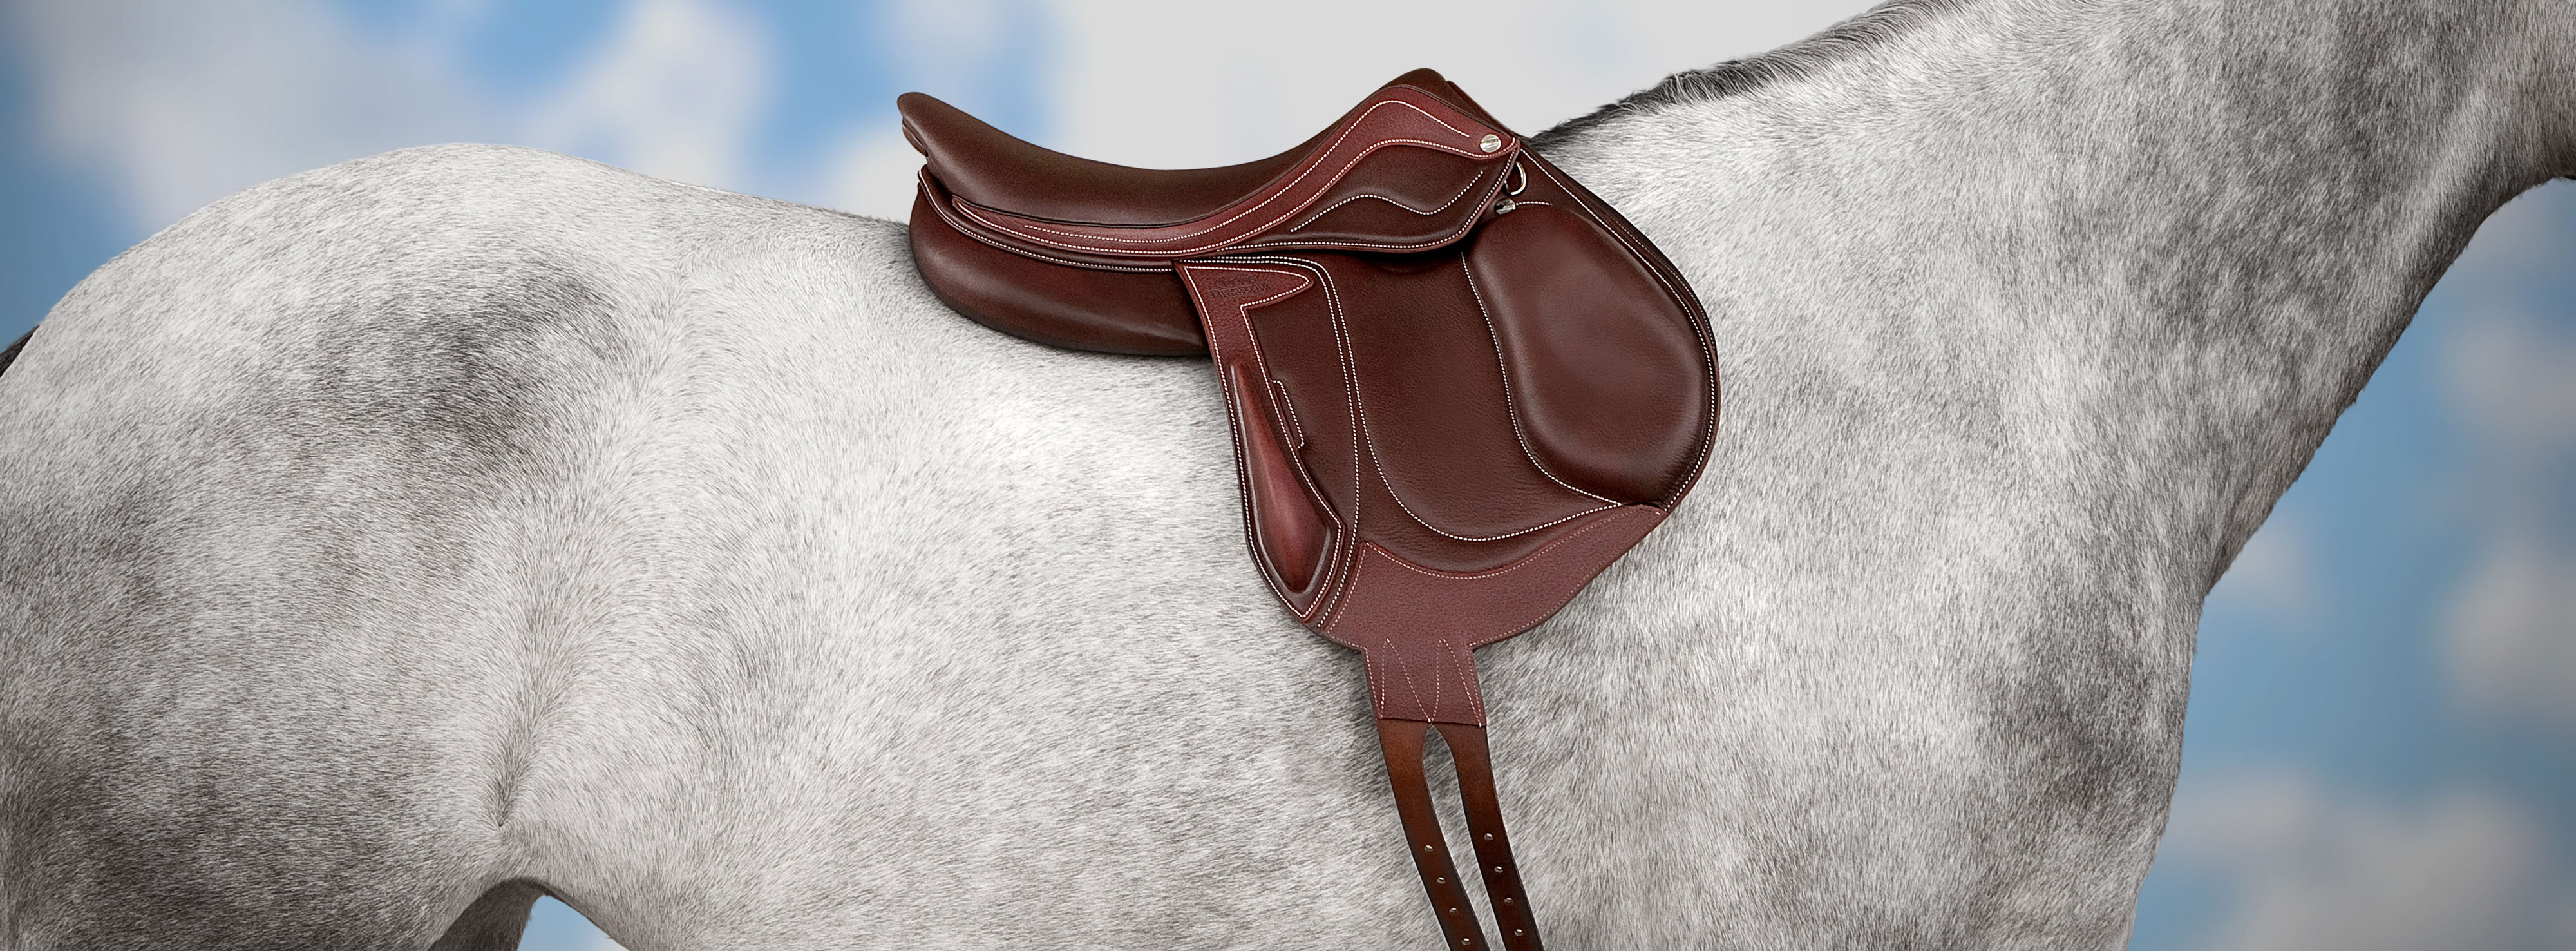 Monoflap Chiberta Lab Devoucoux saddle